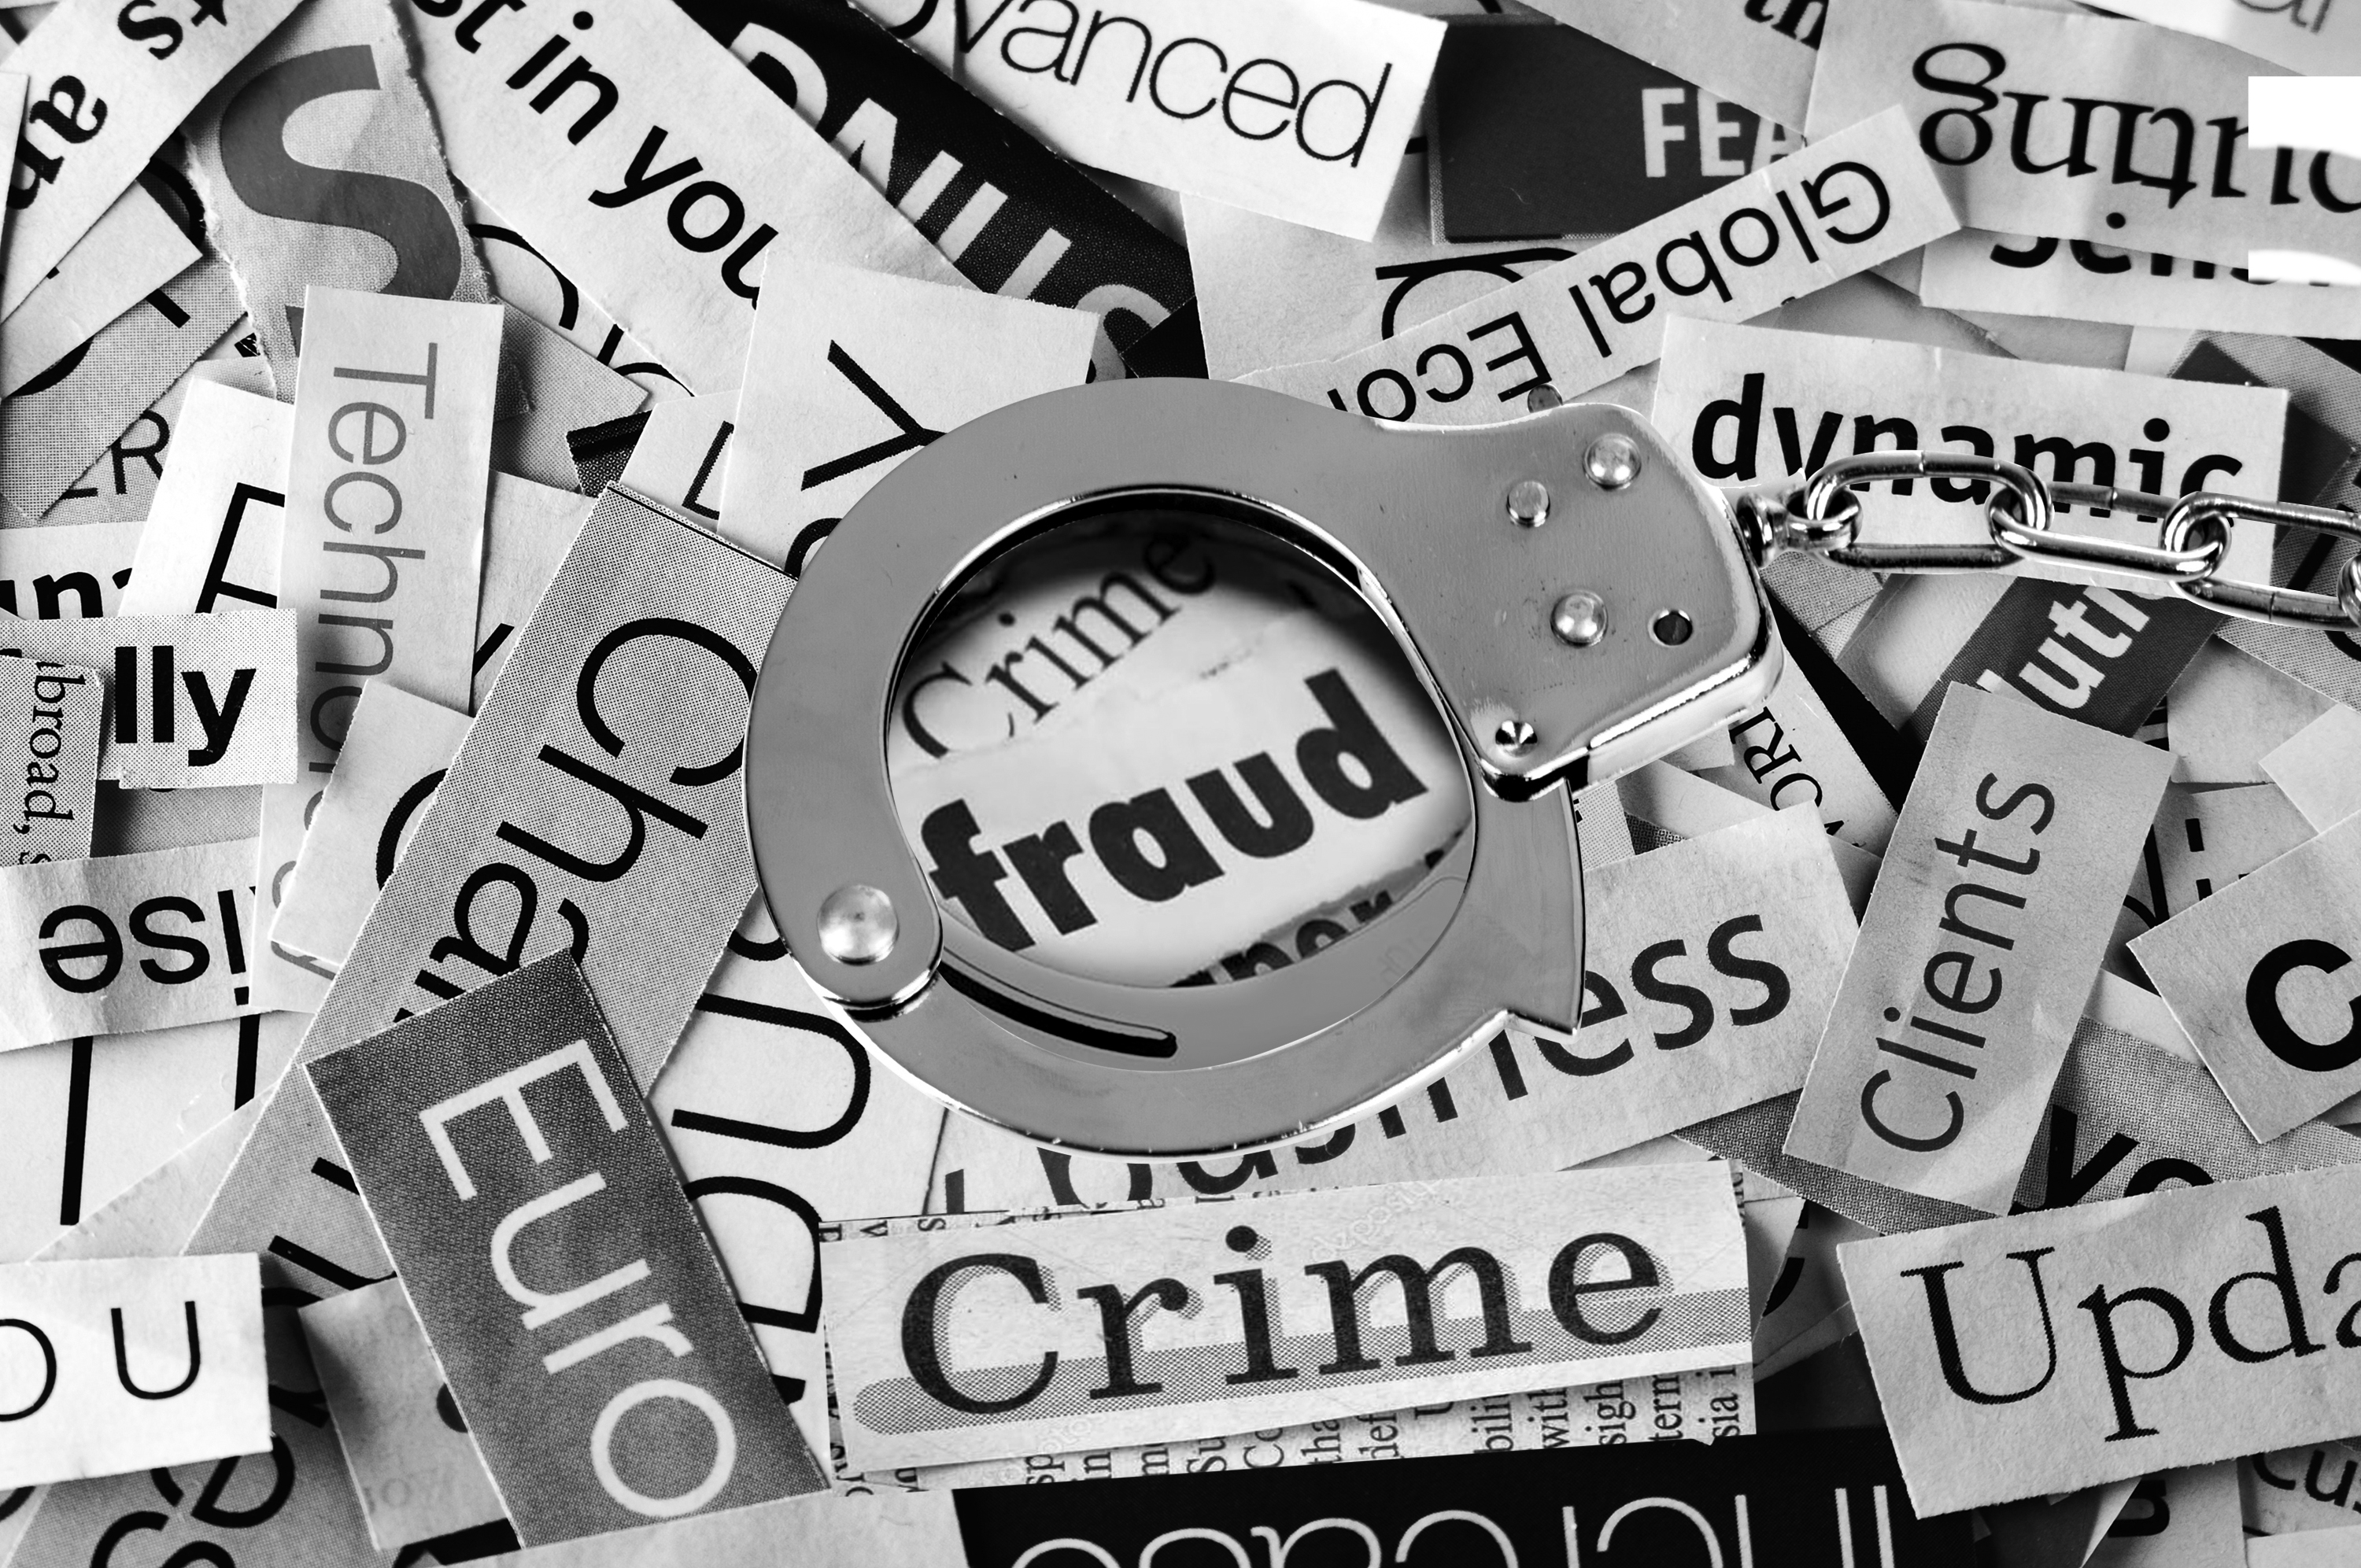 FraudwithHandcuffs